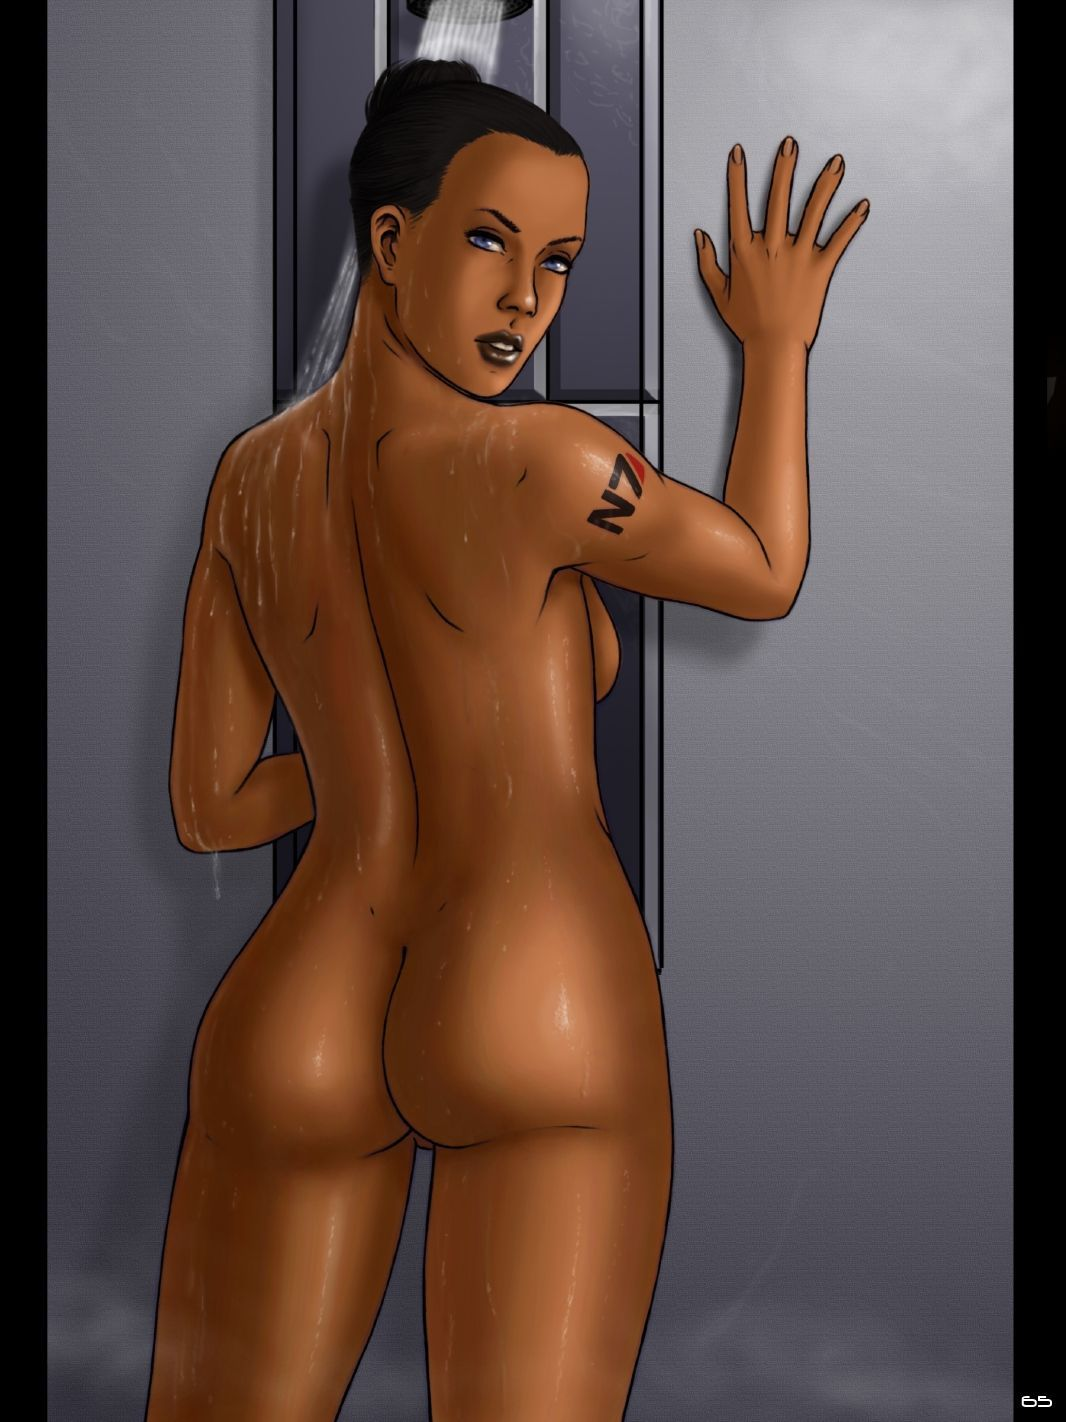 FORNAX_The_galaxys_finest_xenophilia_(Mass_Effect) comix_58160.jpg